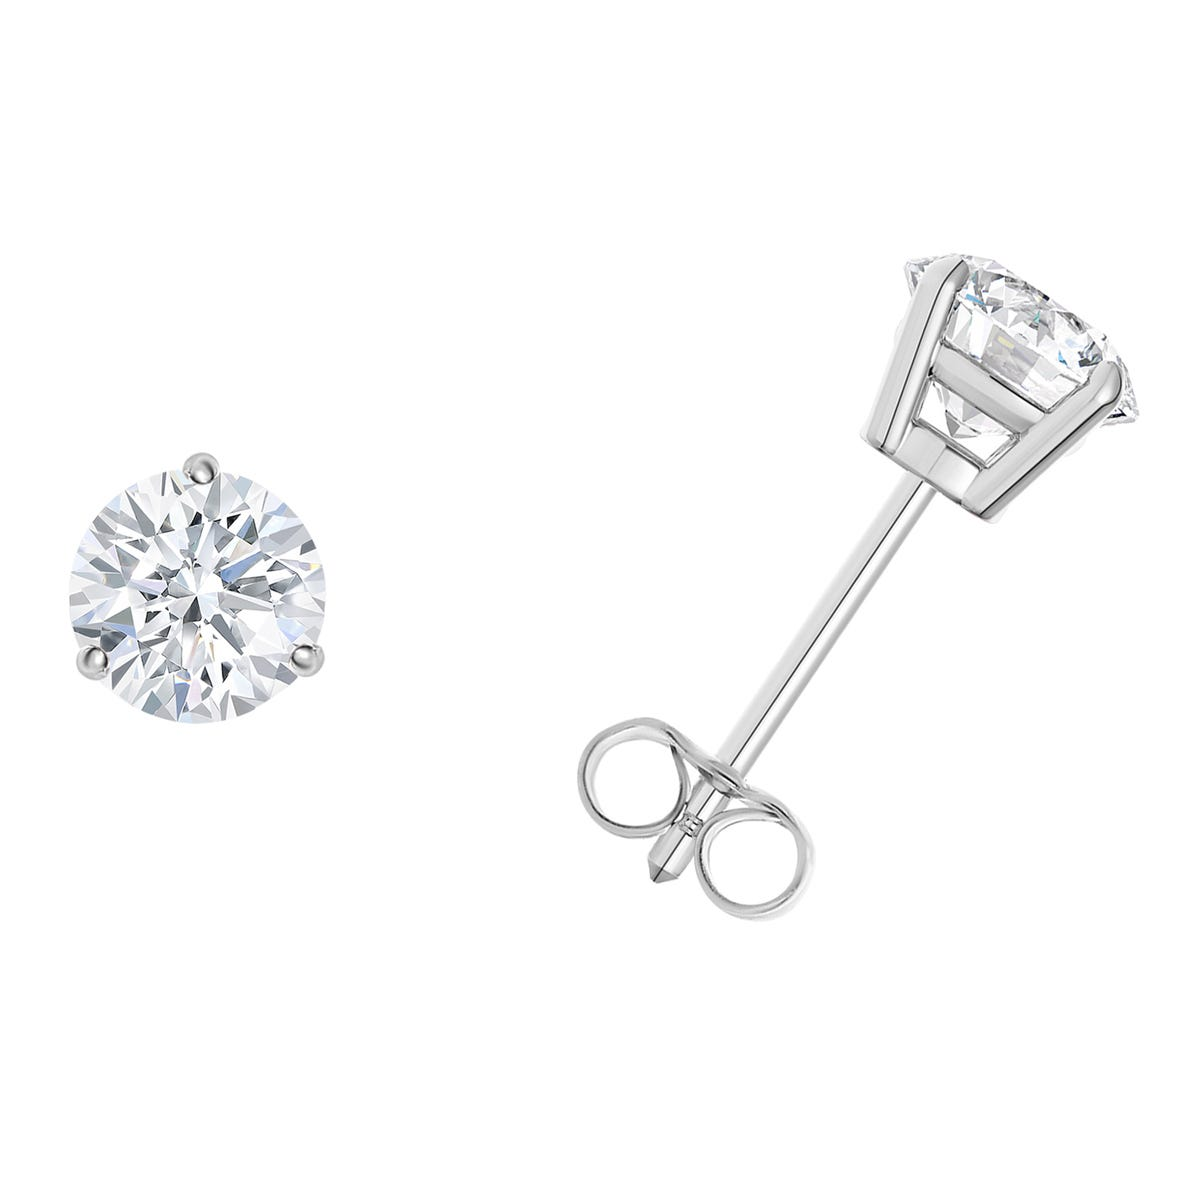 1/5 CTTW Round Diamond Solitaire Stud Earrings in 14K White Gold 3-Prong IGI Certified I2